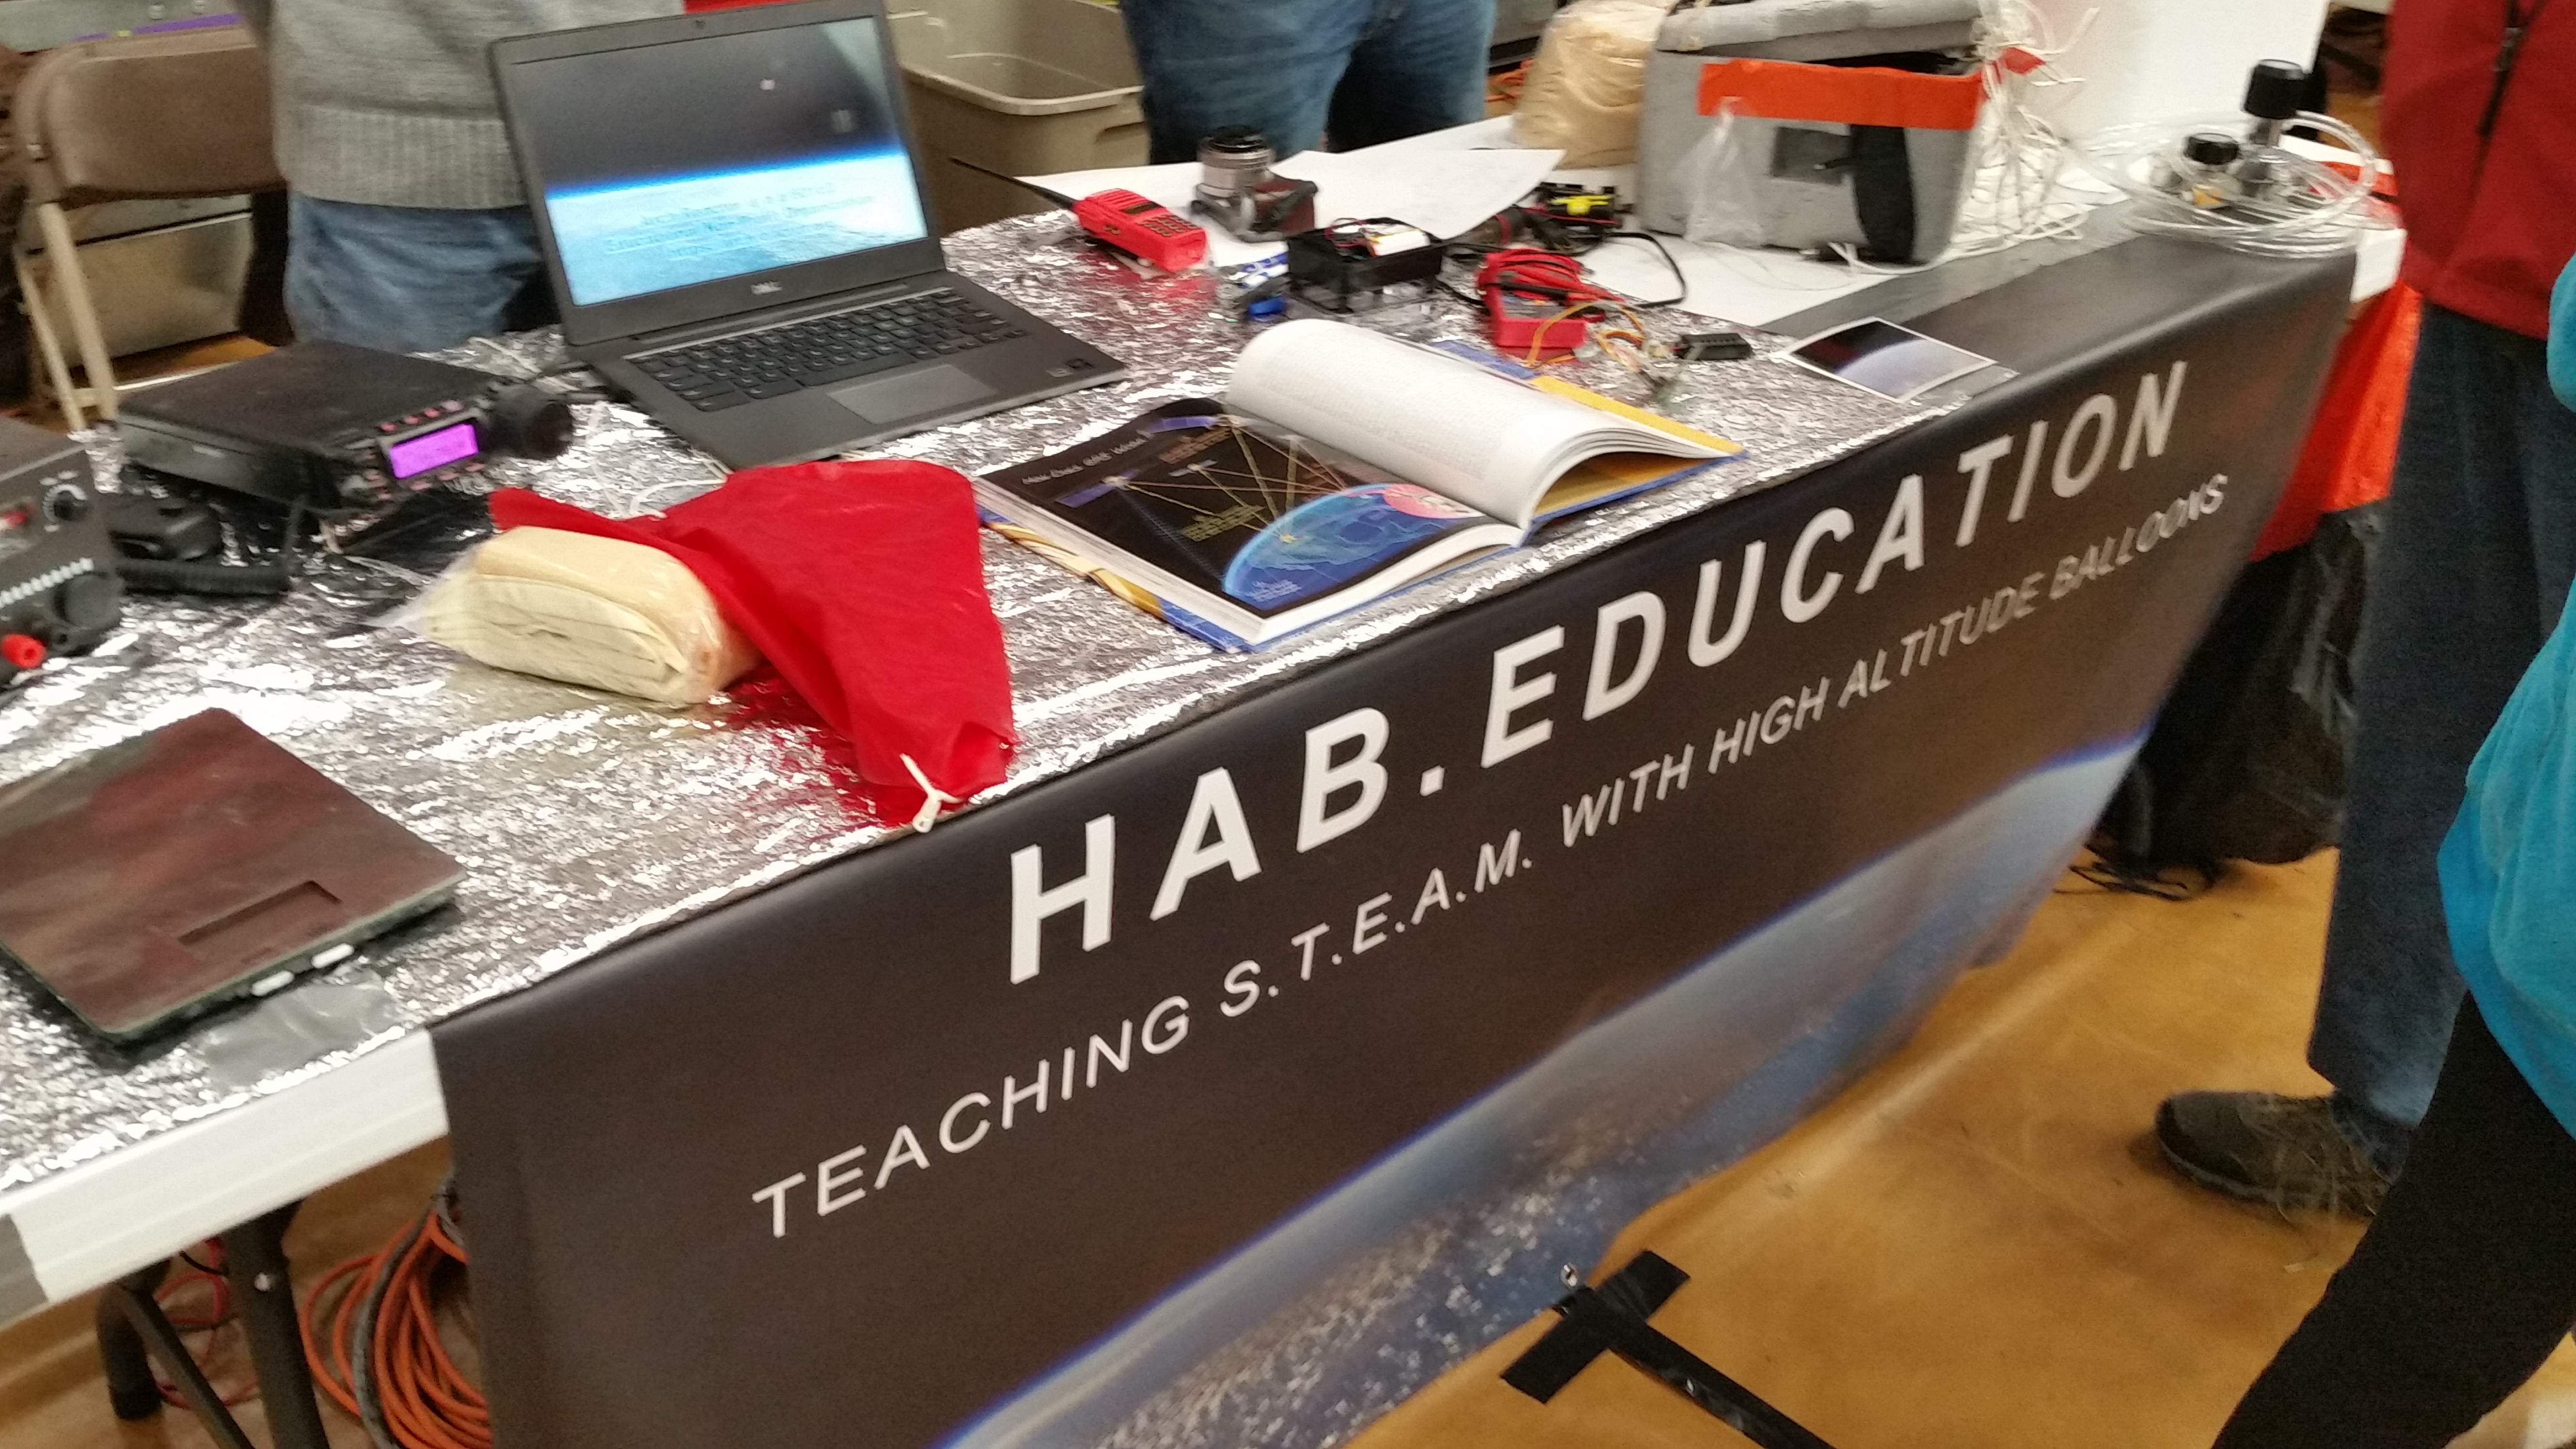 HAB Education